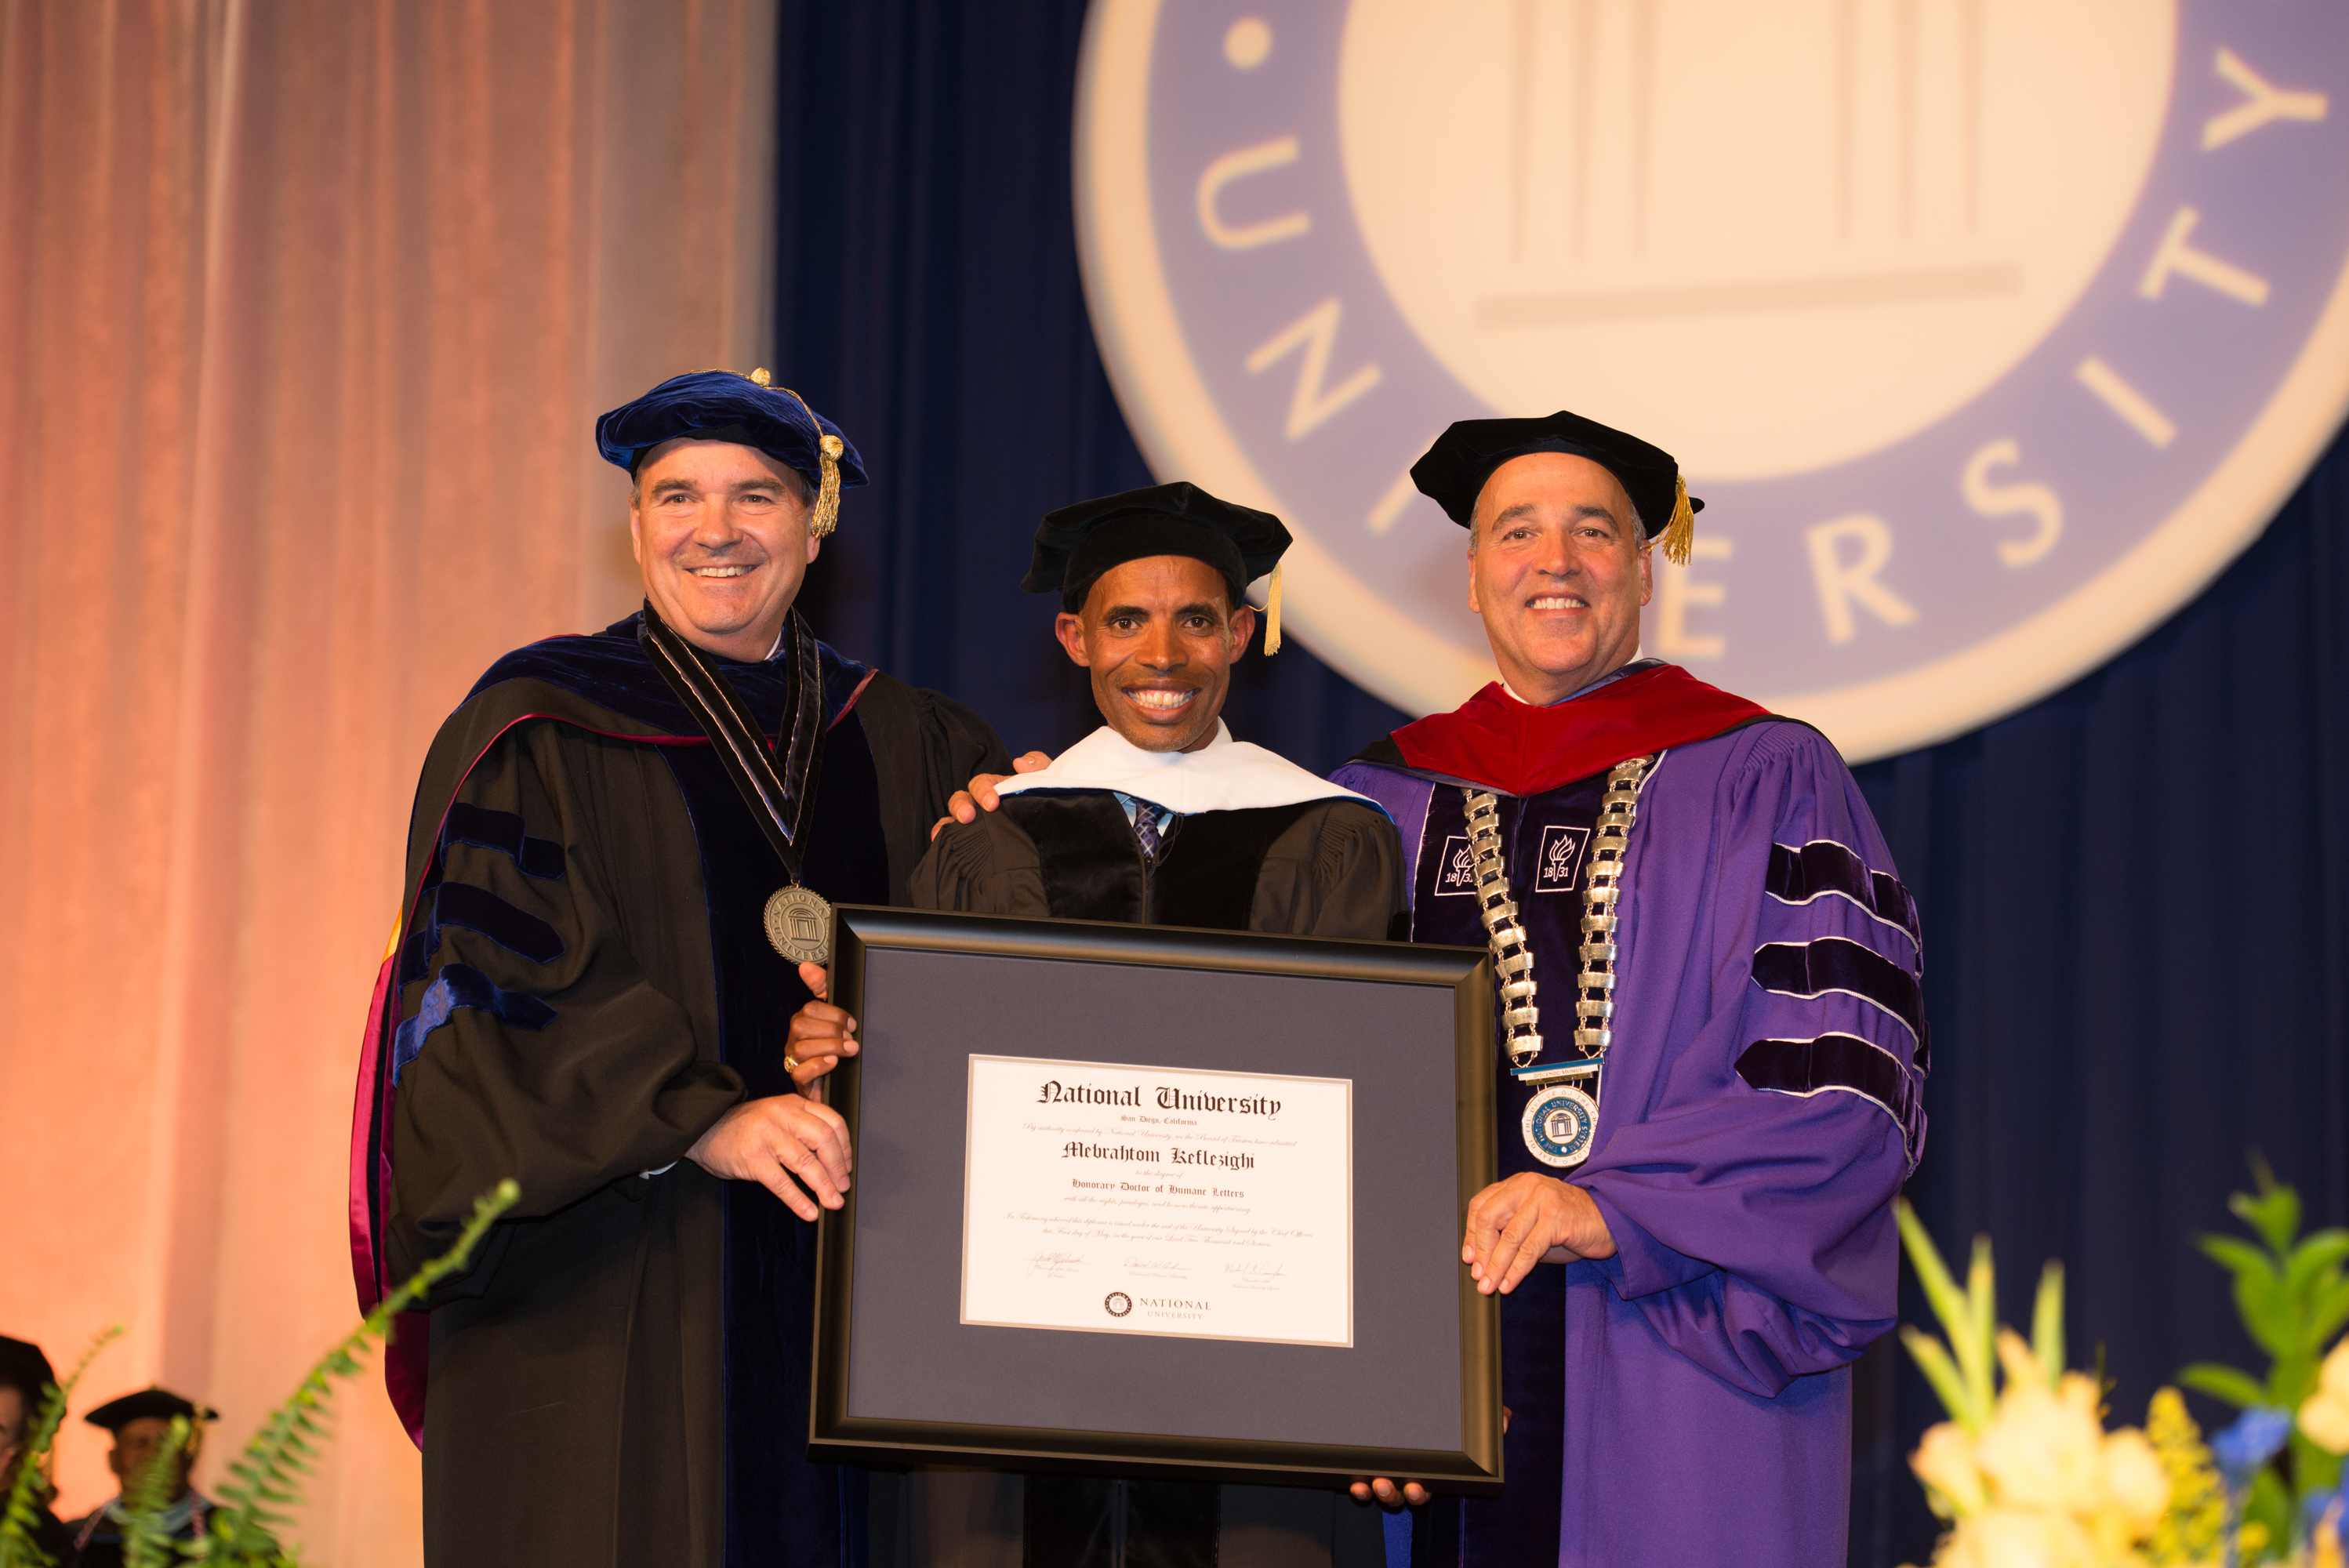 Meb Keflezighi with an honorary doctorate degree